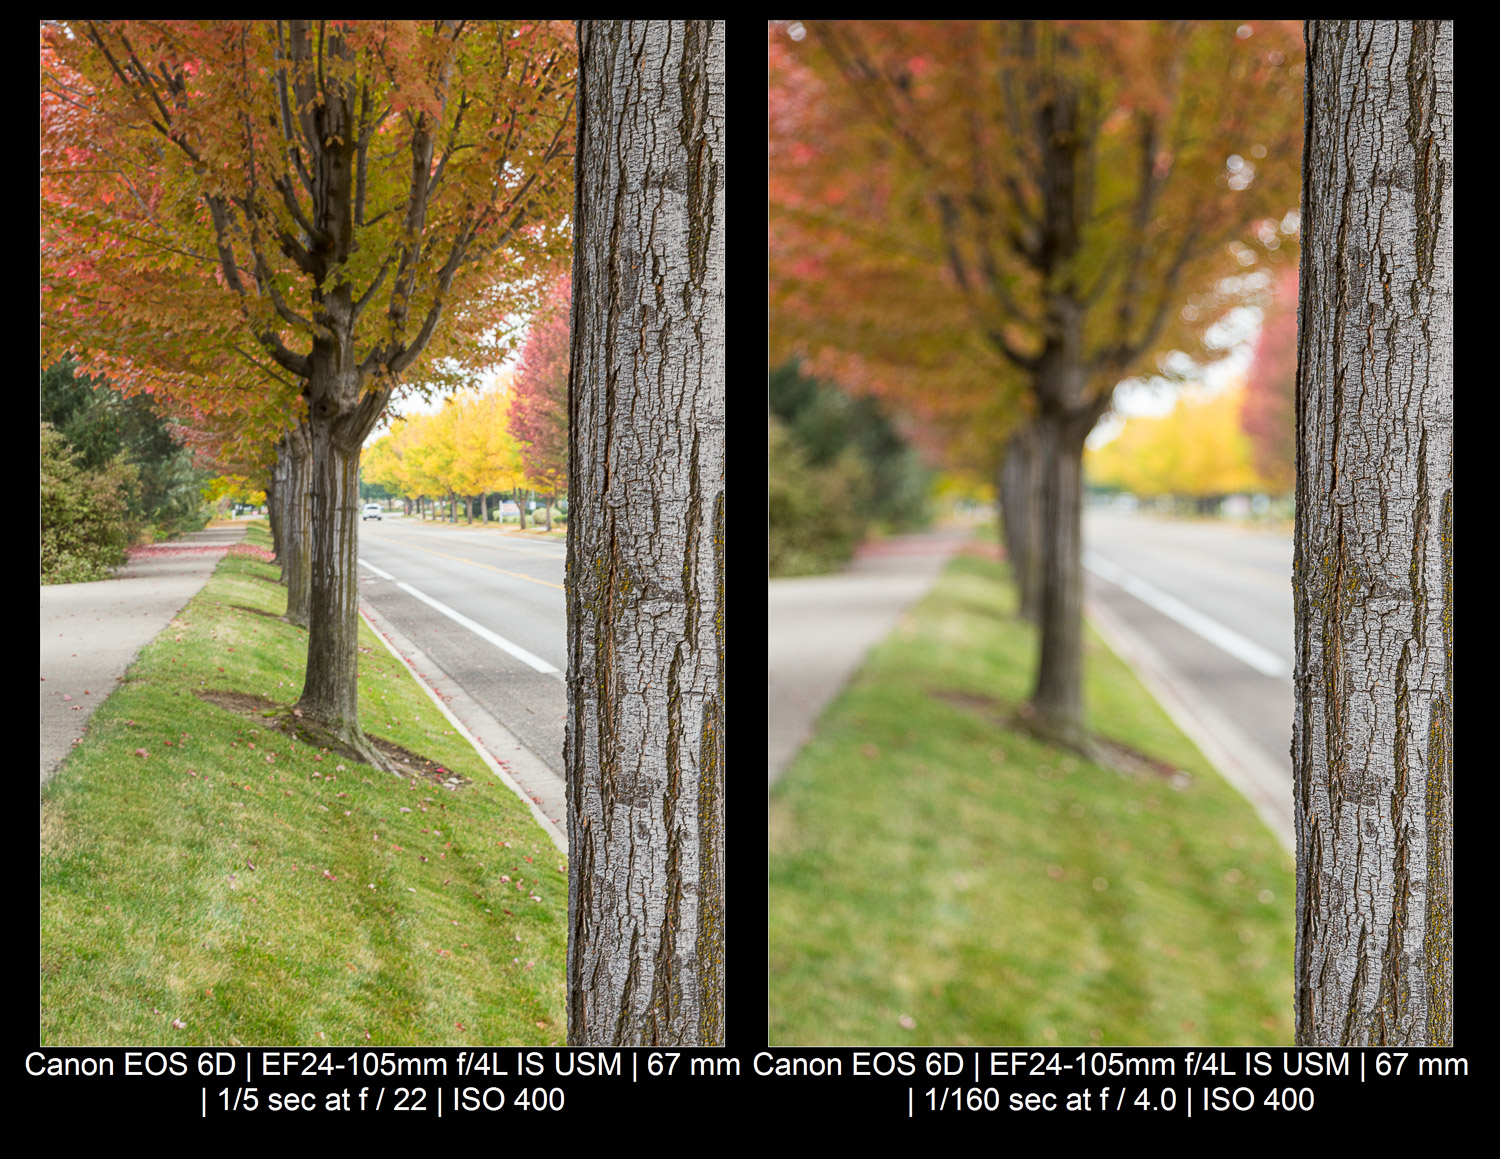 aperture/depth of field comparison